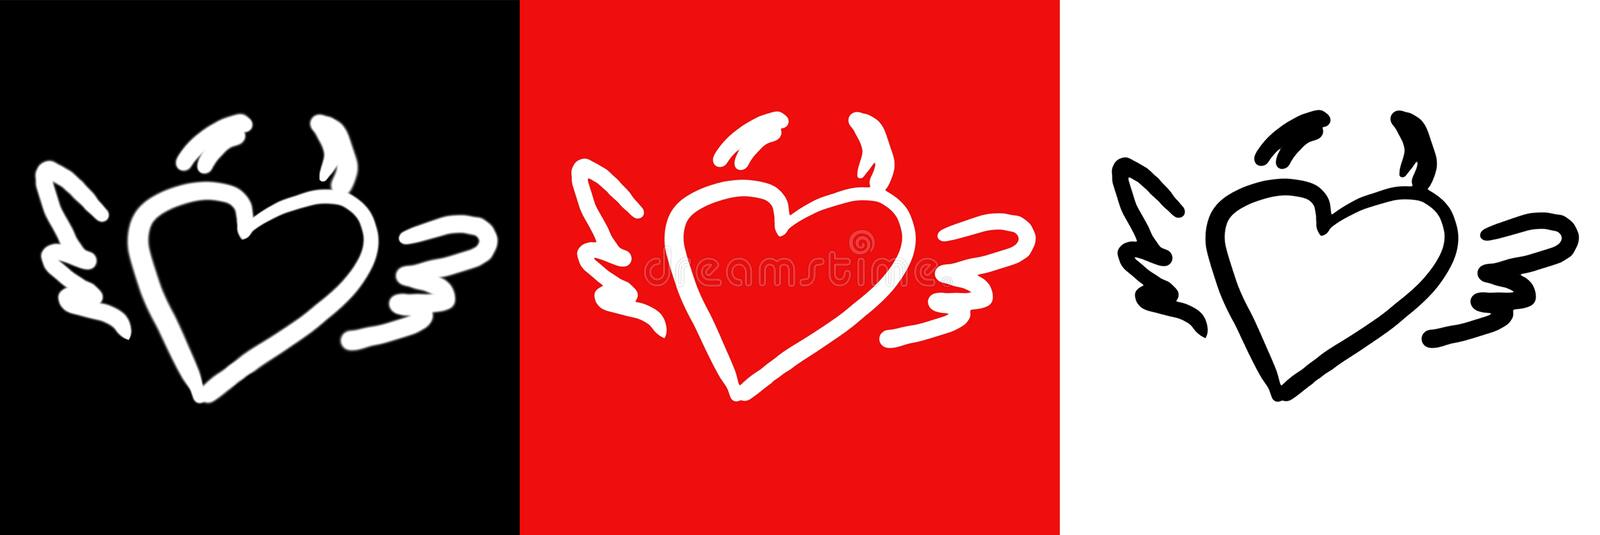 Download Heart-horns-wings stock illustration. Image of relations - 13250355